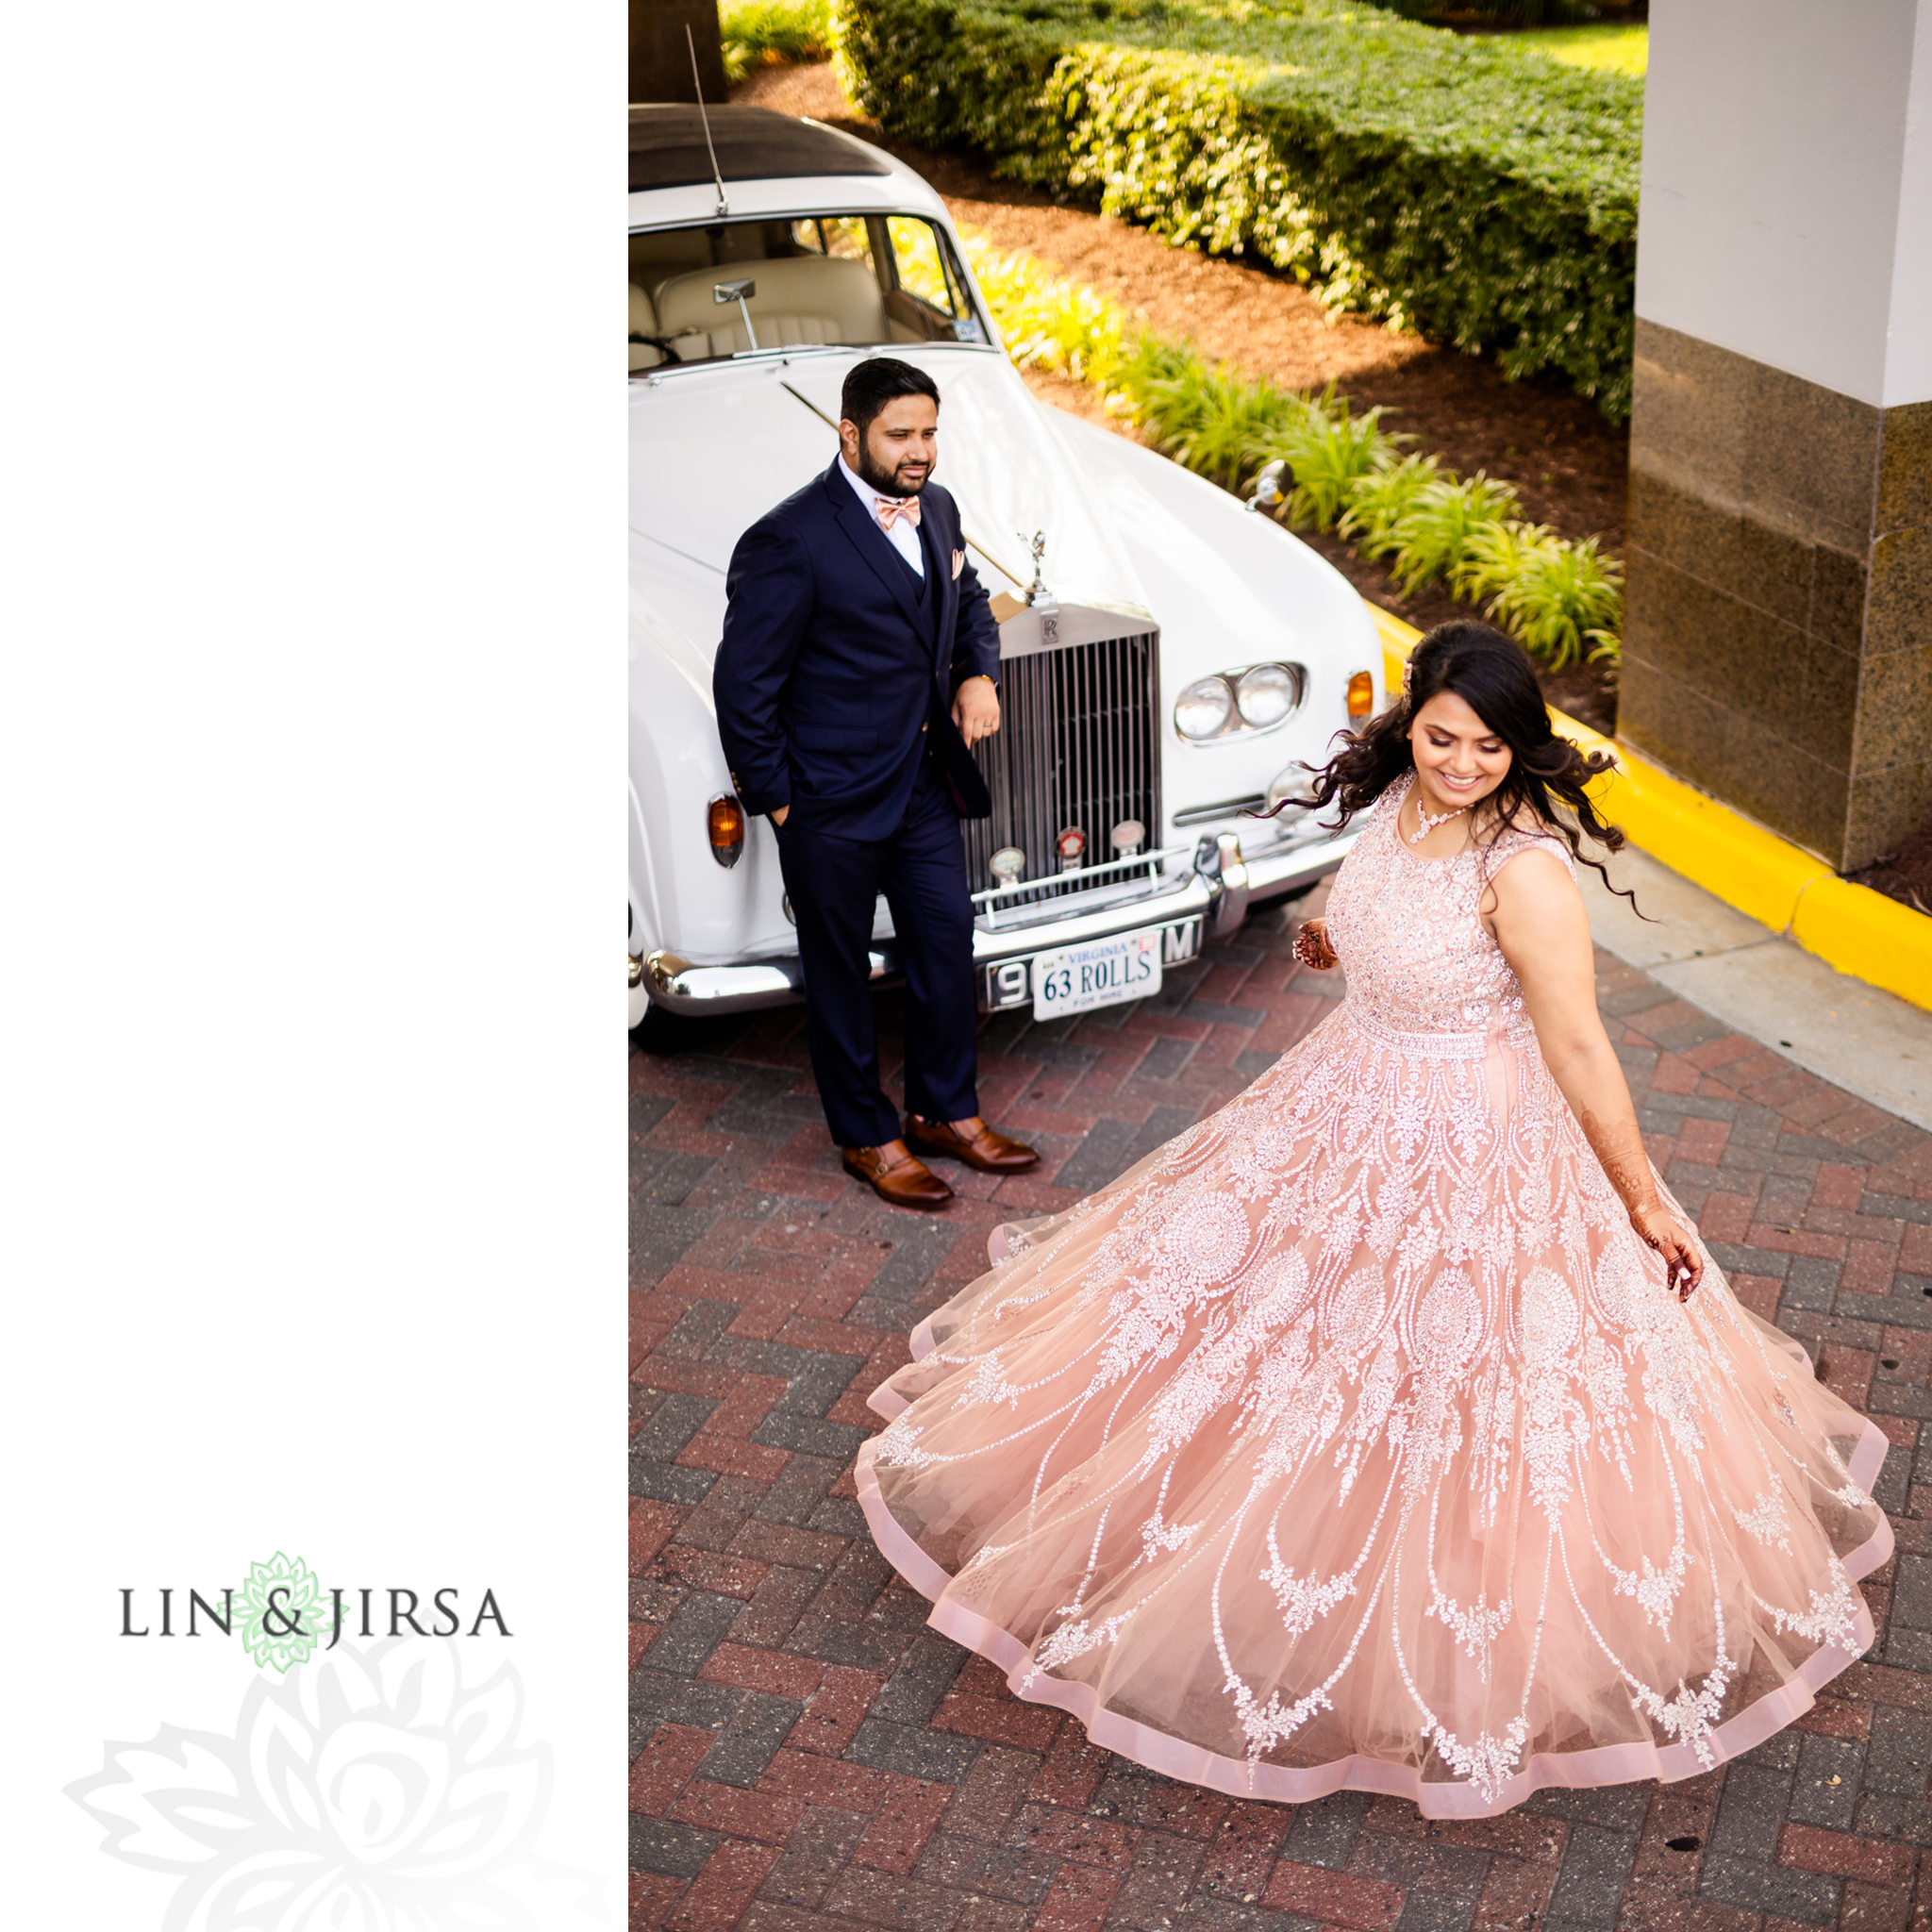 36 Delta Hotels Chesapeake Norfolk Virginia Indian Wedding Photography